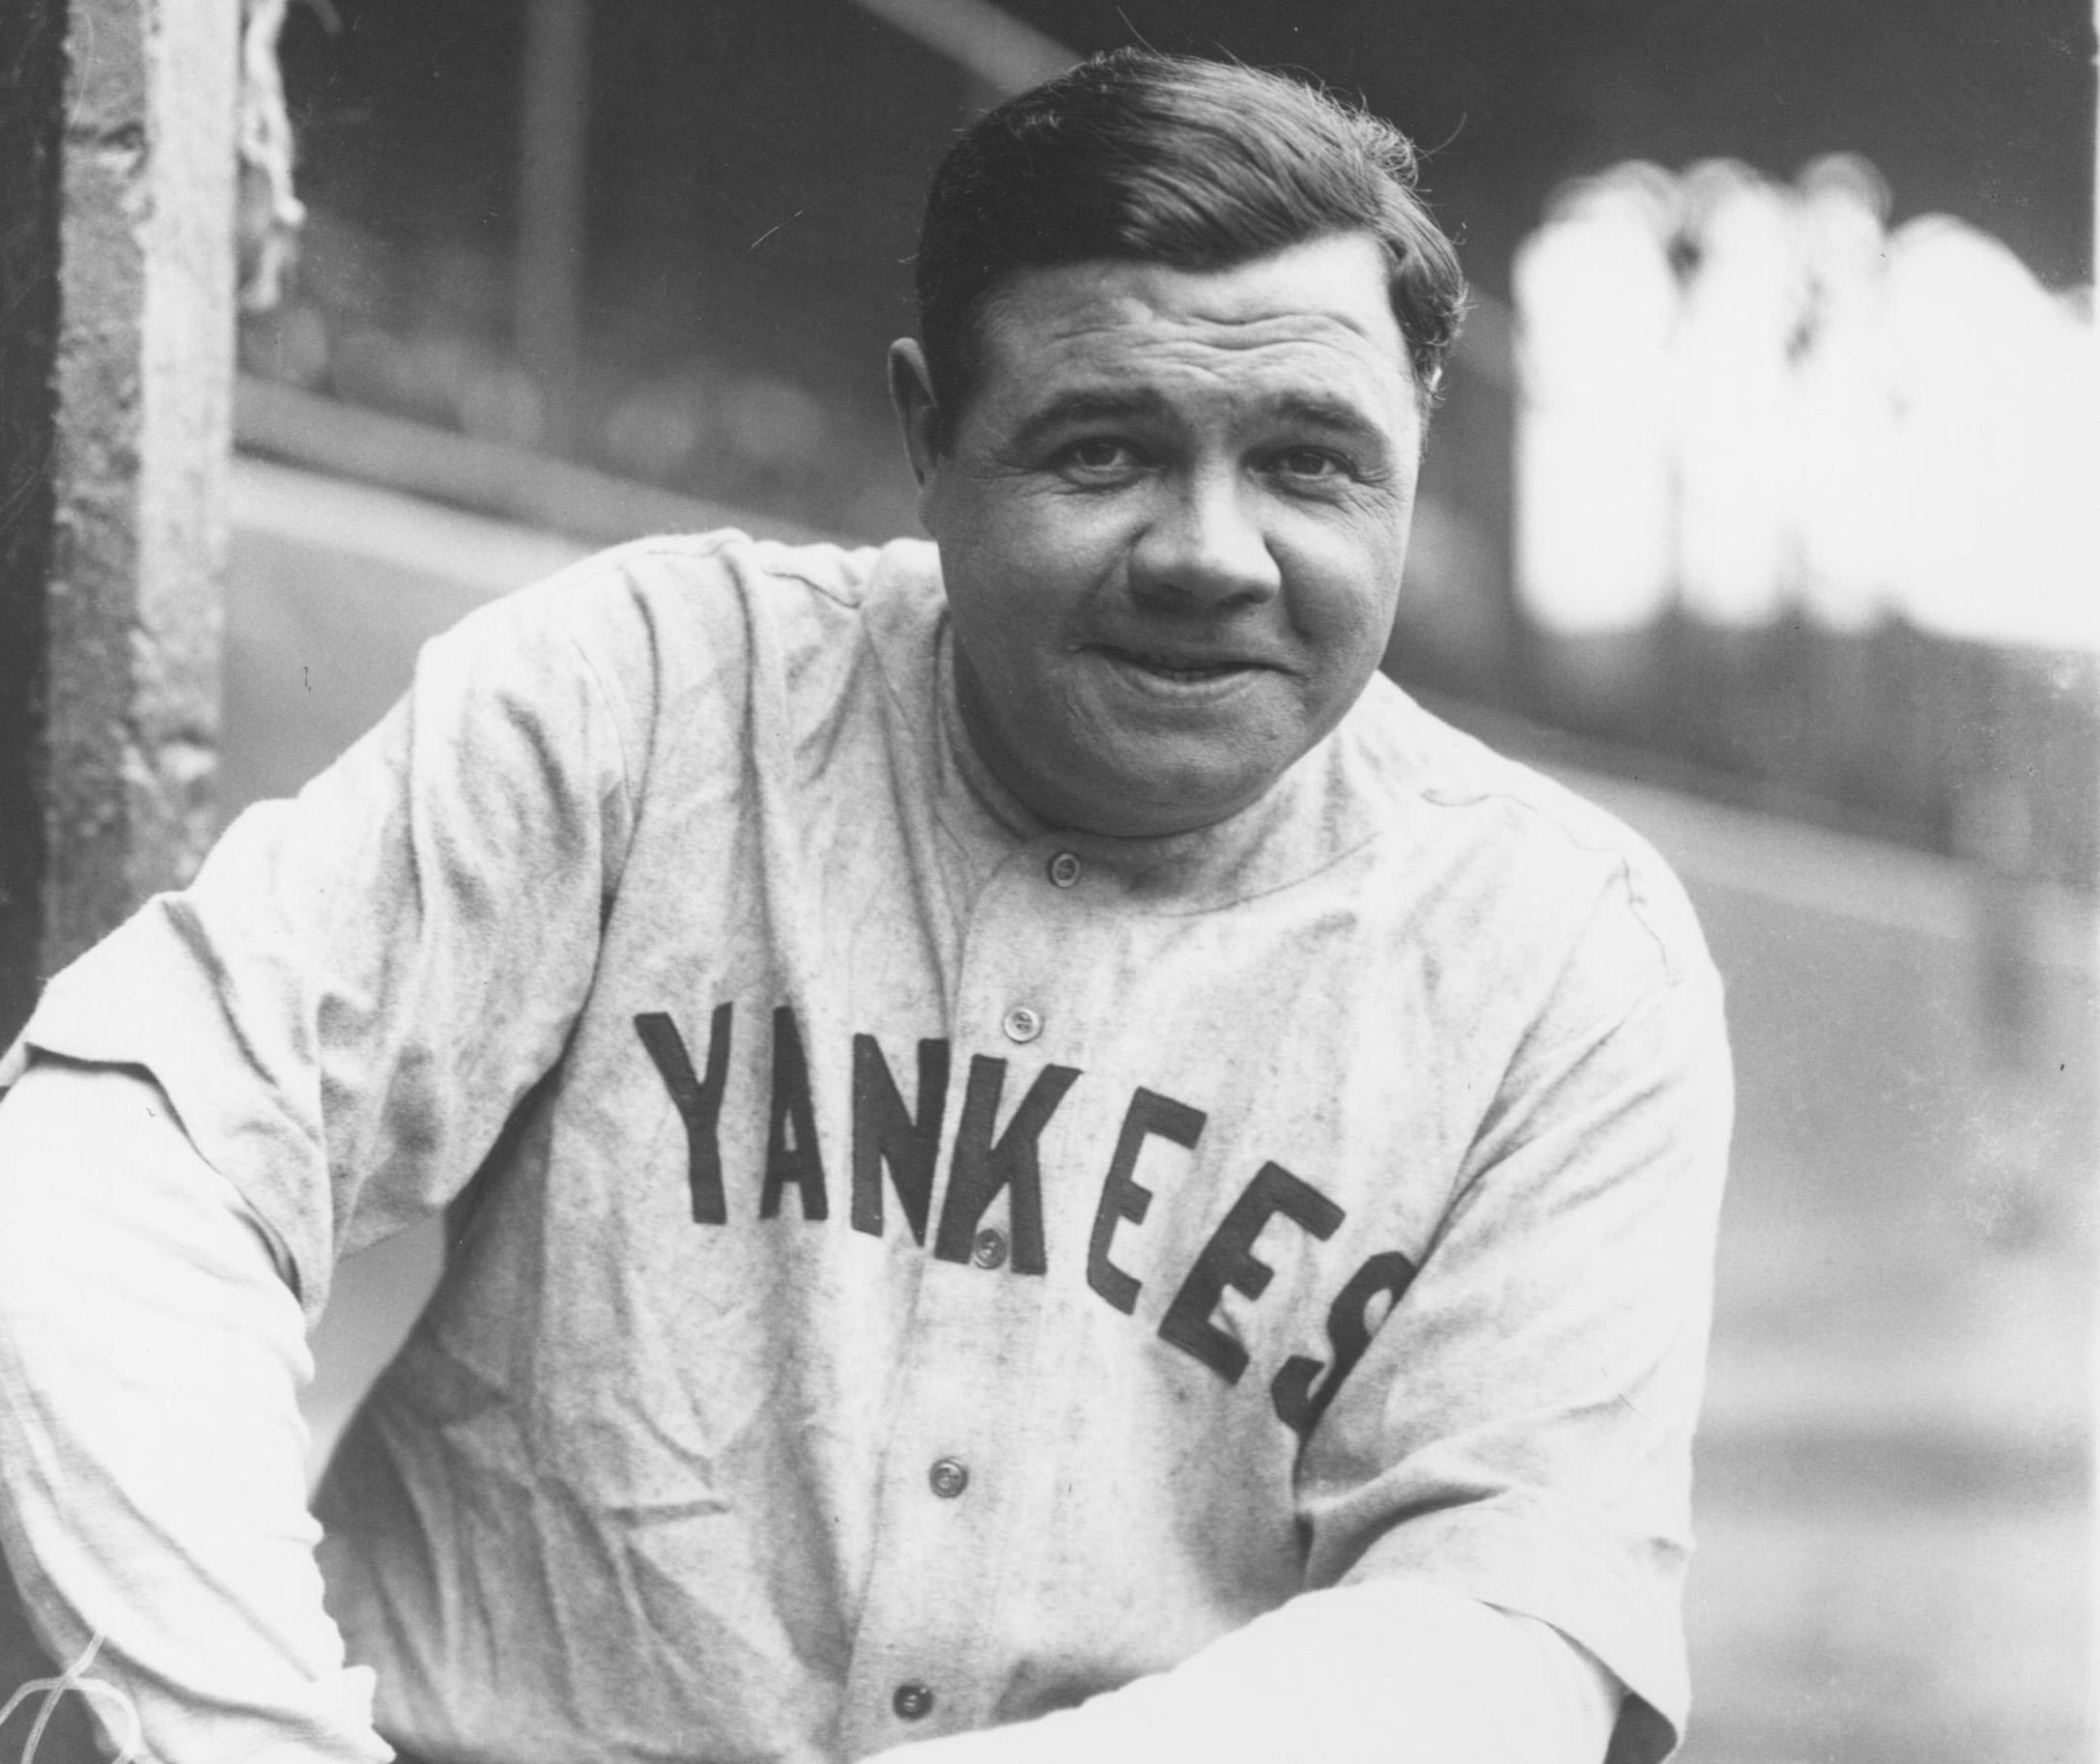 new product dd5bf 546dd Babe Ruth's rare 1920s jersey up for auction